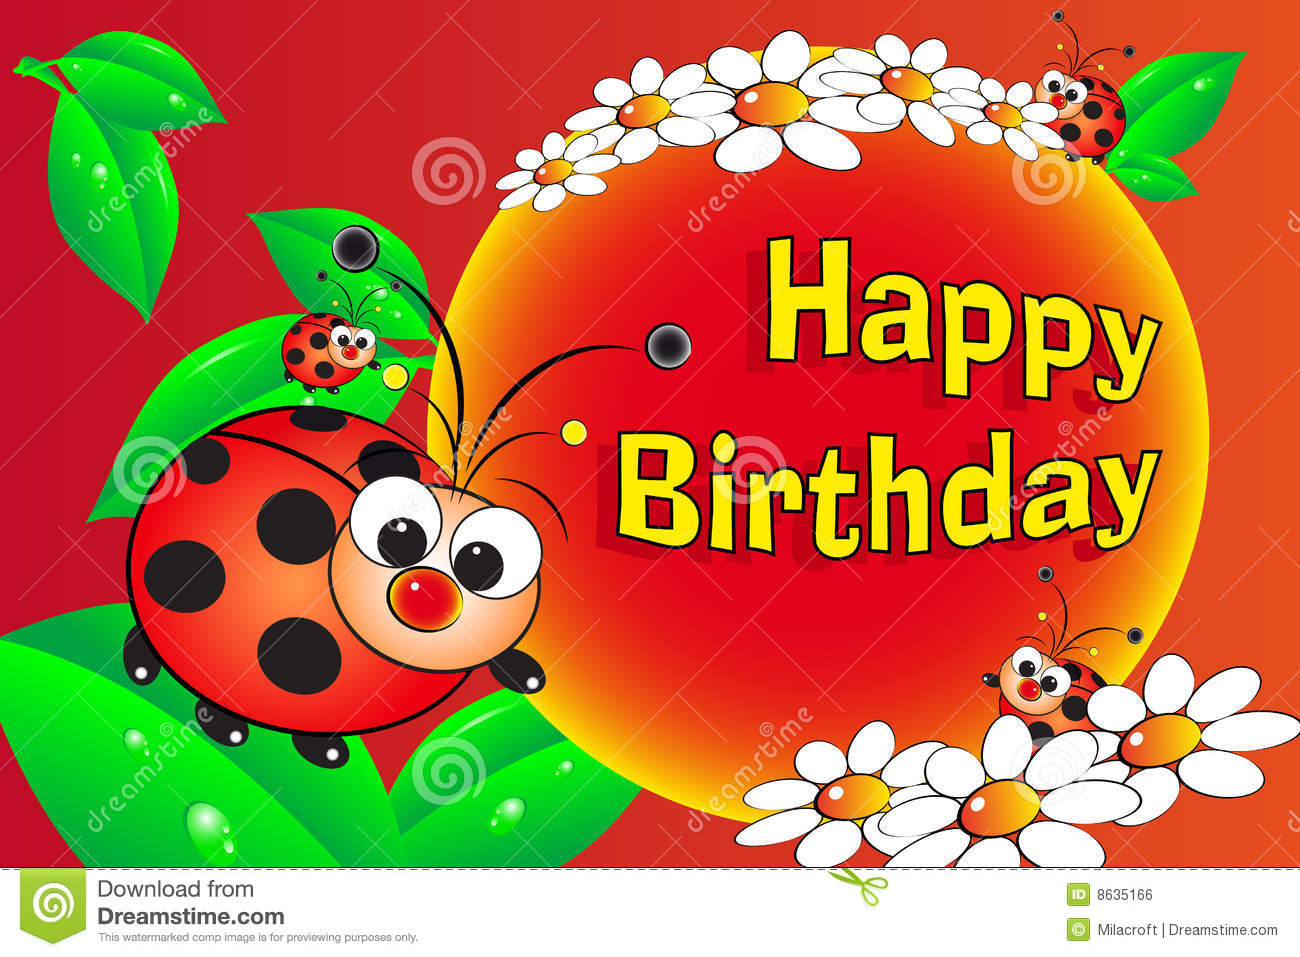 Ladybug And Flowers Birthday Card Royalty Free Image – Ladybug Birthday Cards